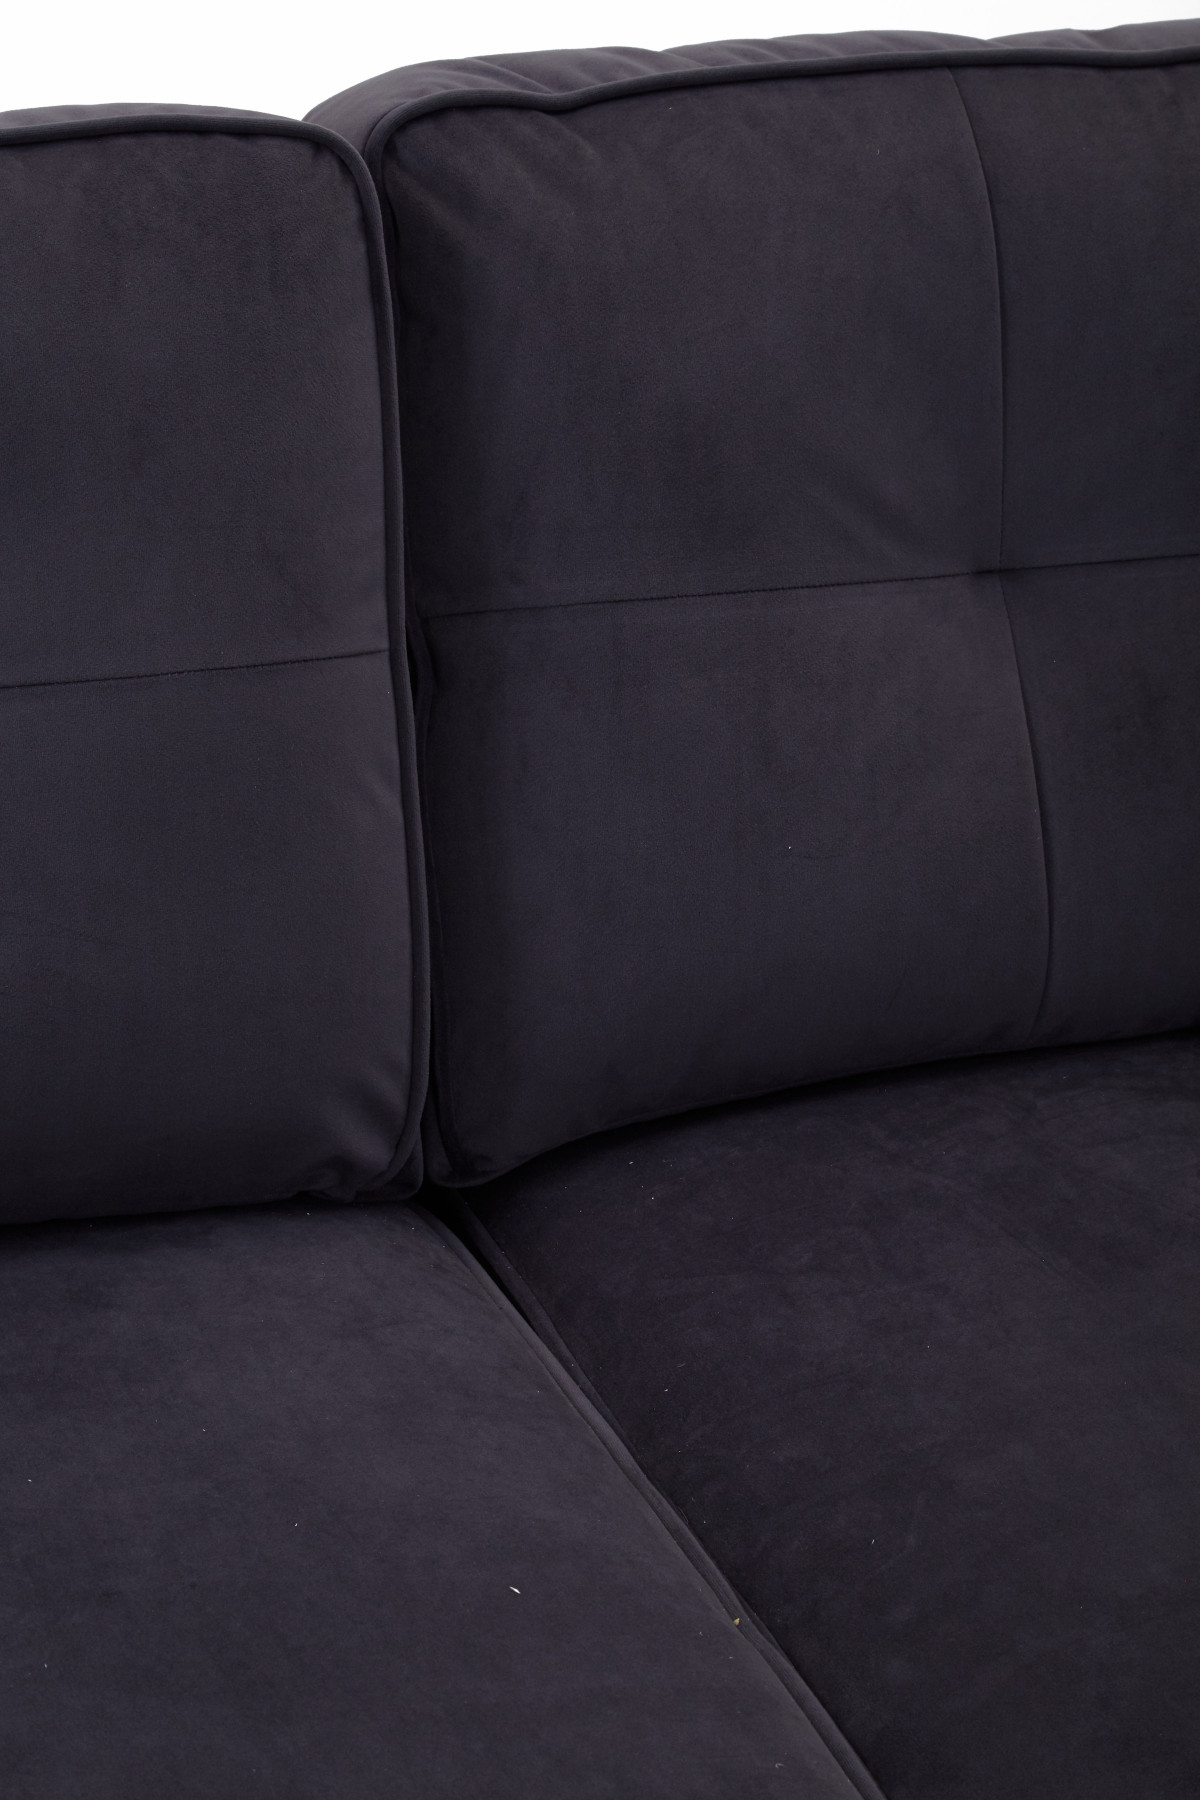 Daytona Large Sofa